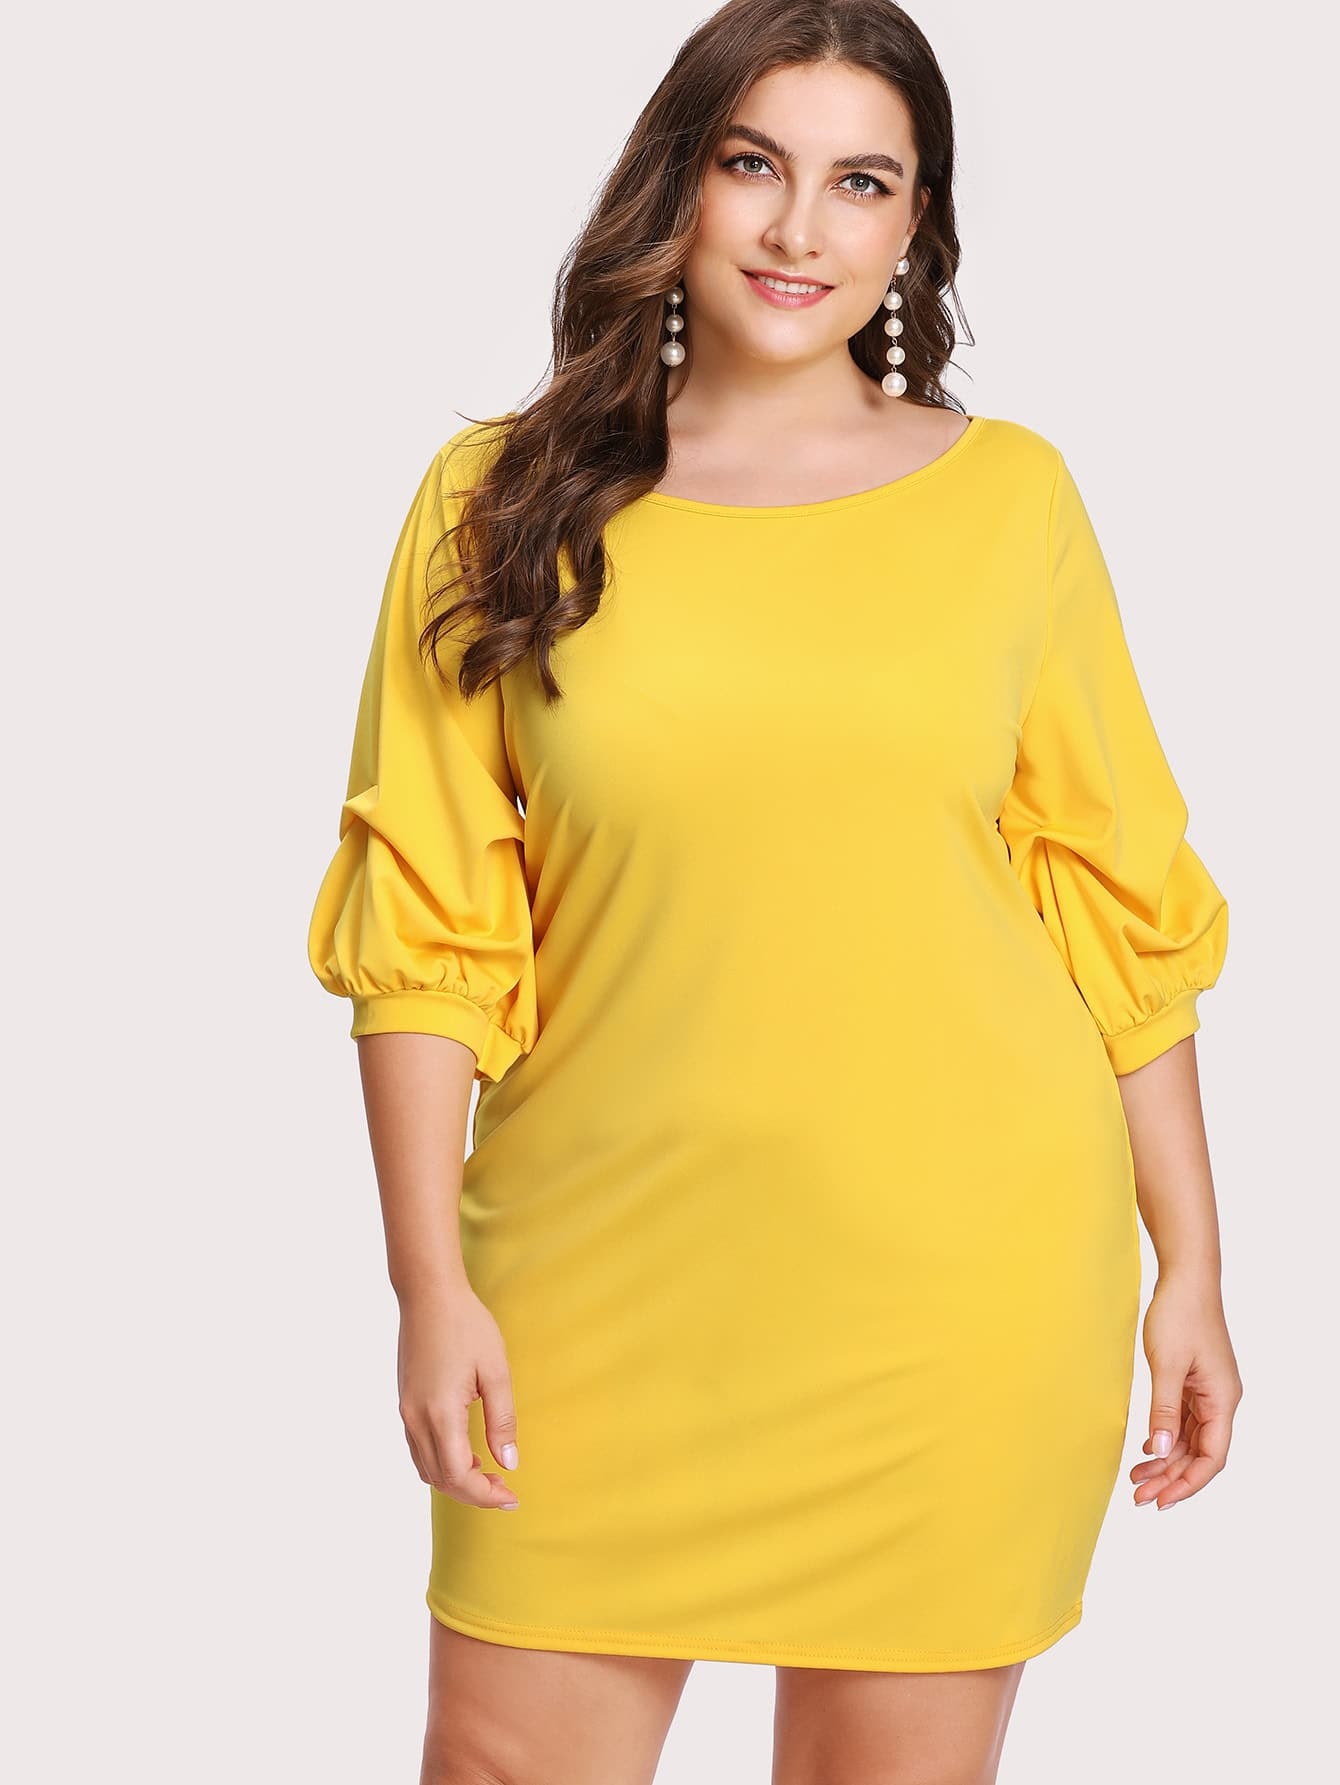 Bishop Gathered Sleeve Solid Dress